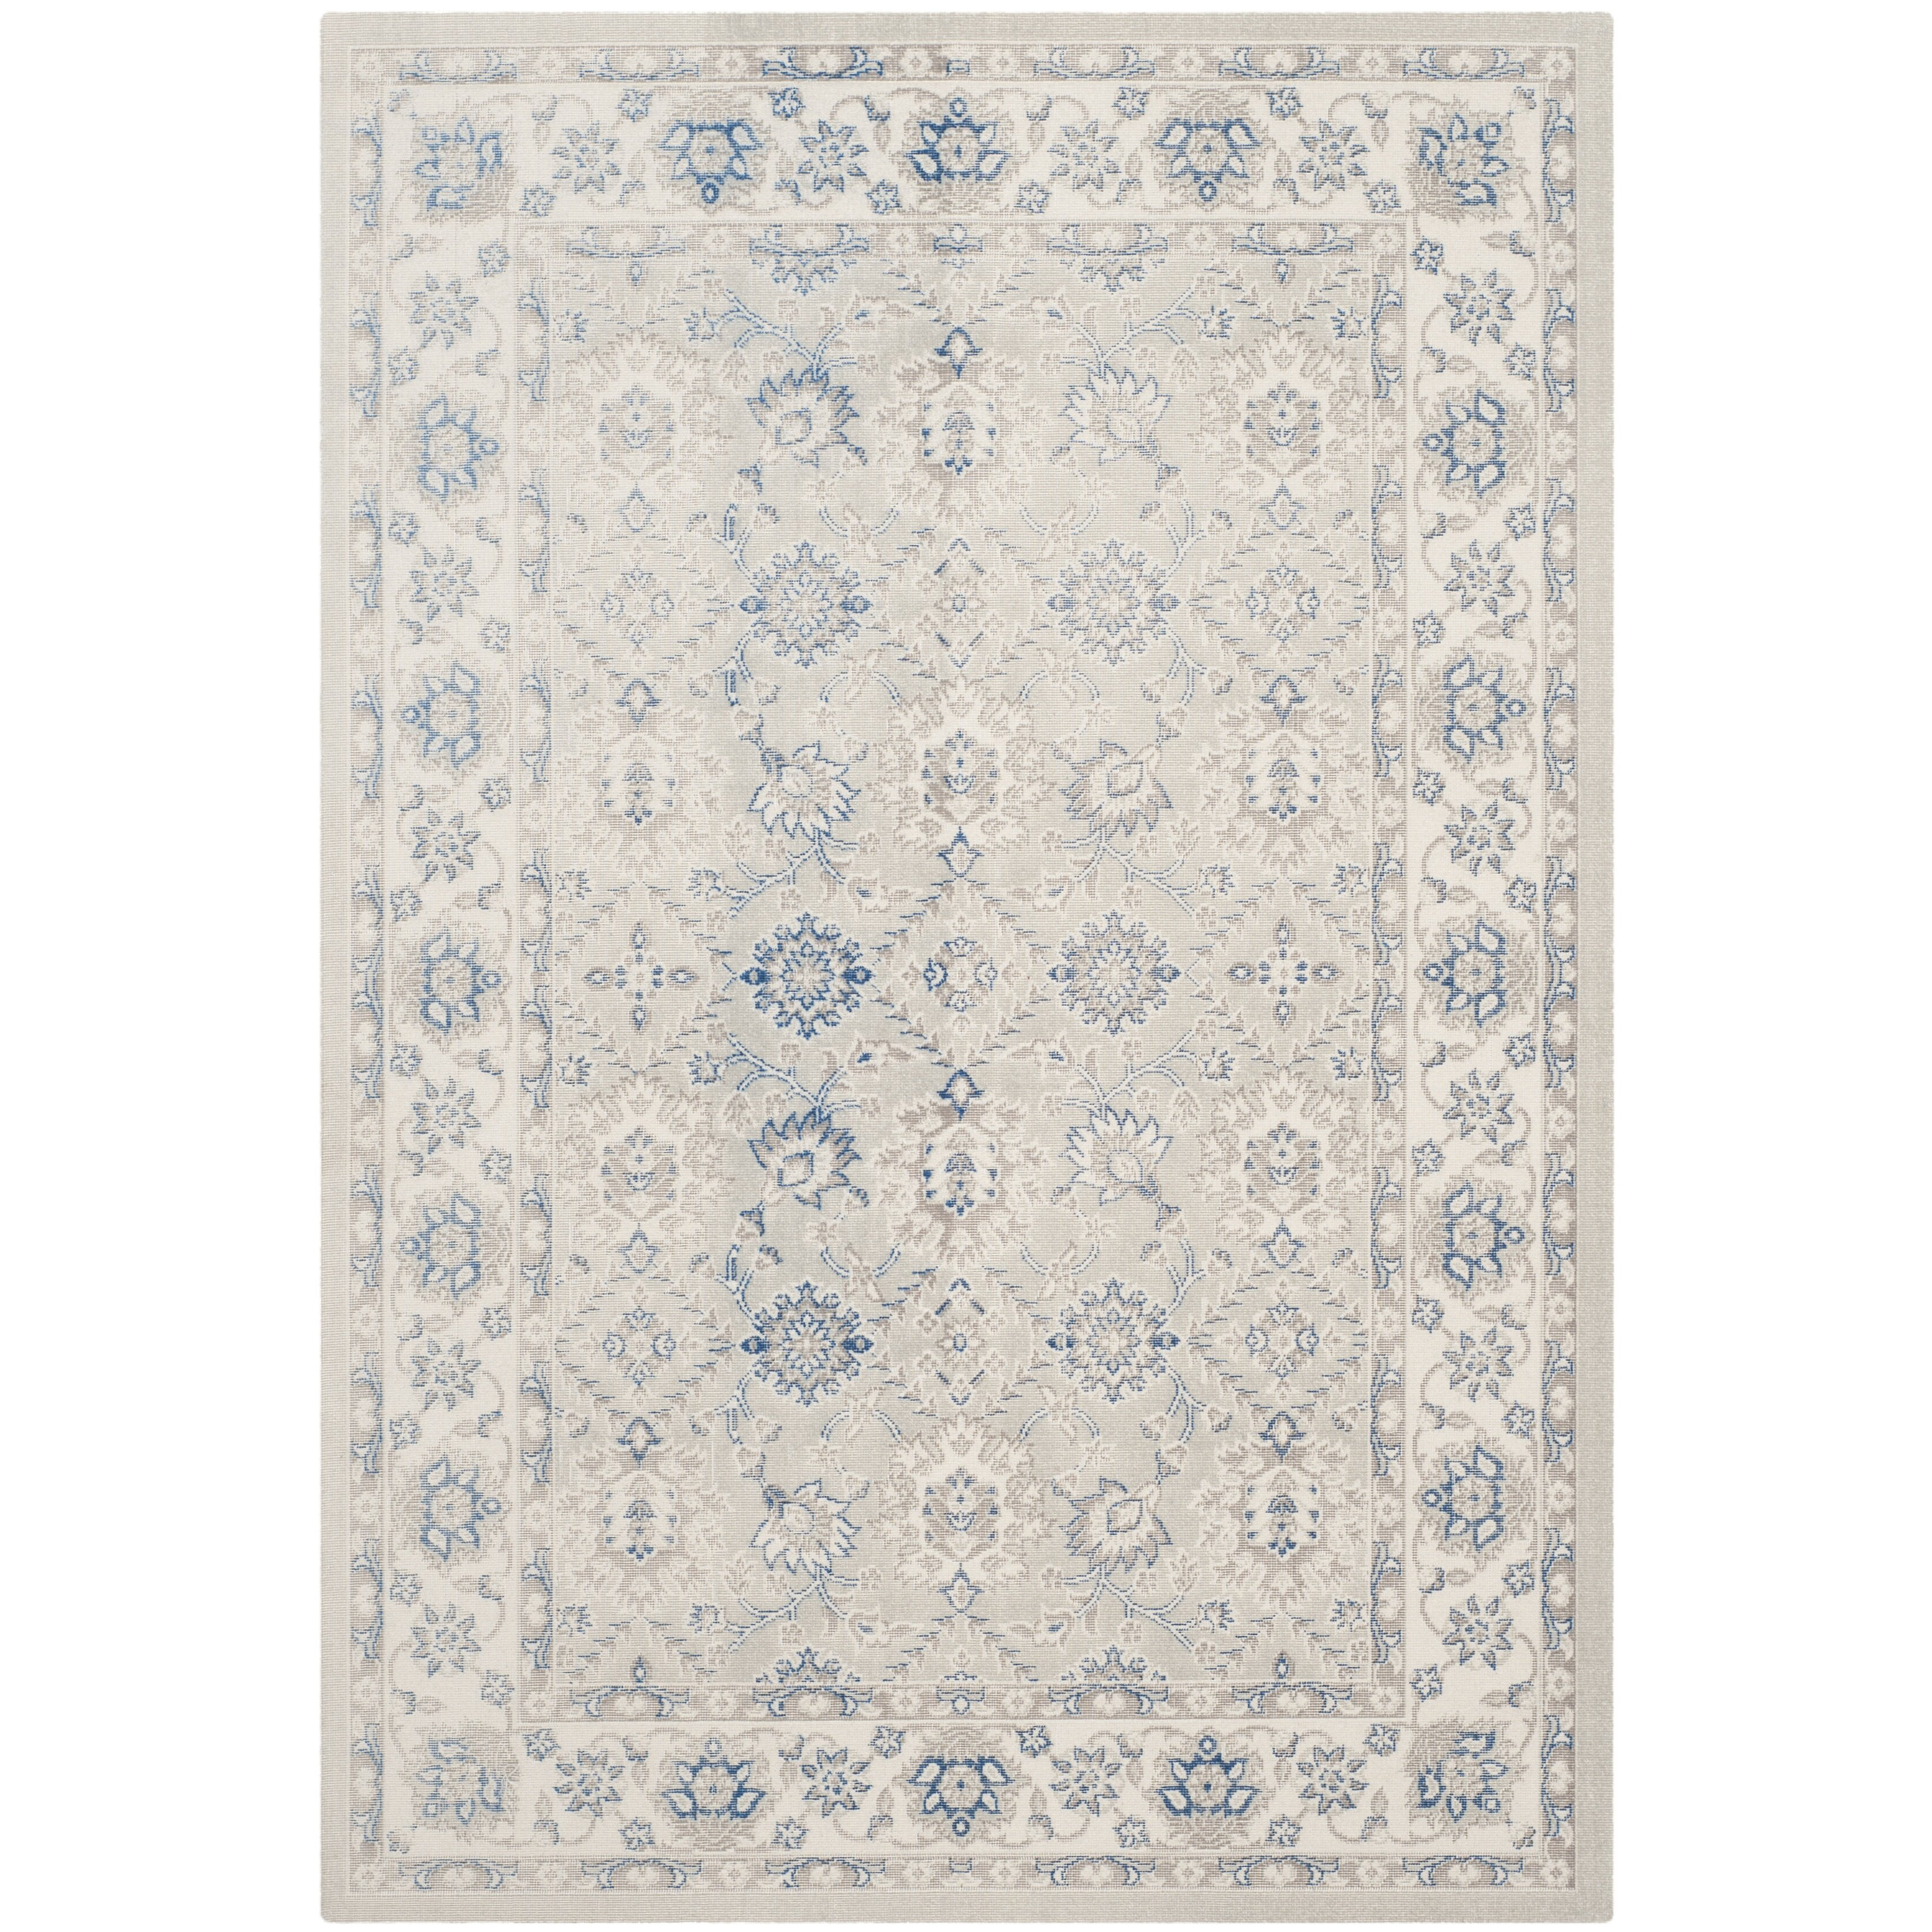 Darby Home Co Patina Light Blue/Ivory Area Rug & Reviews